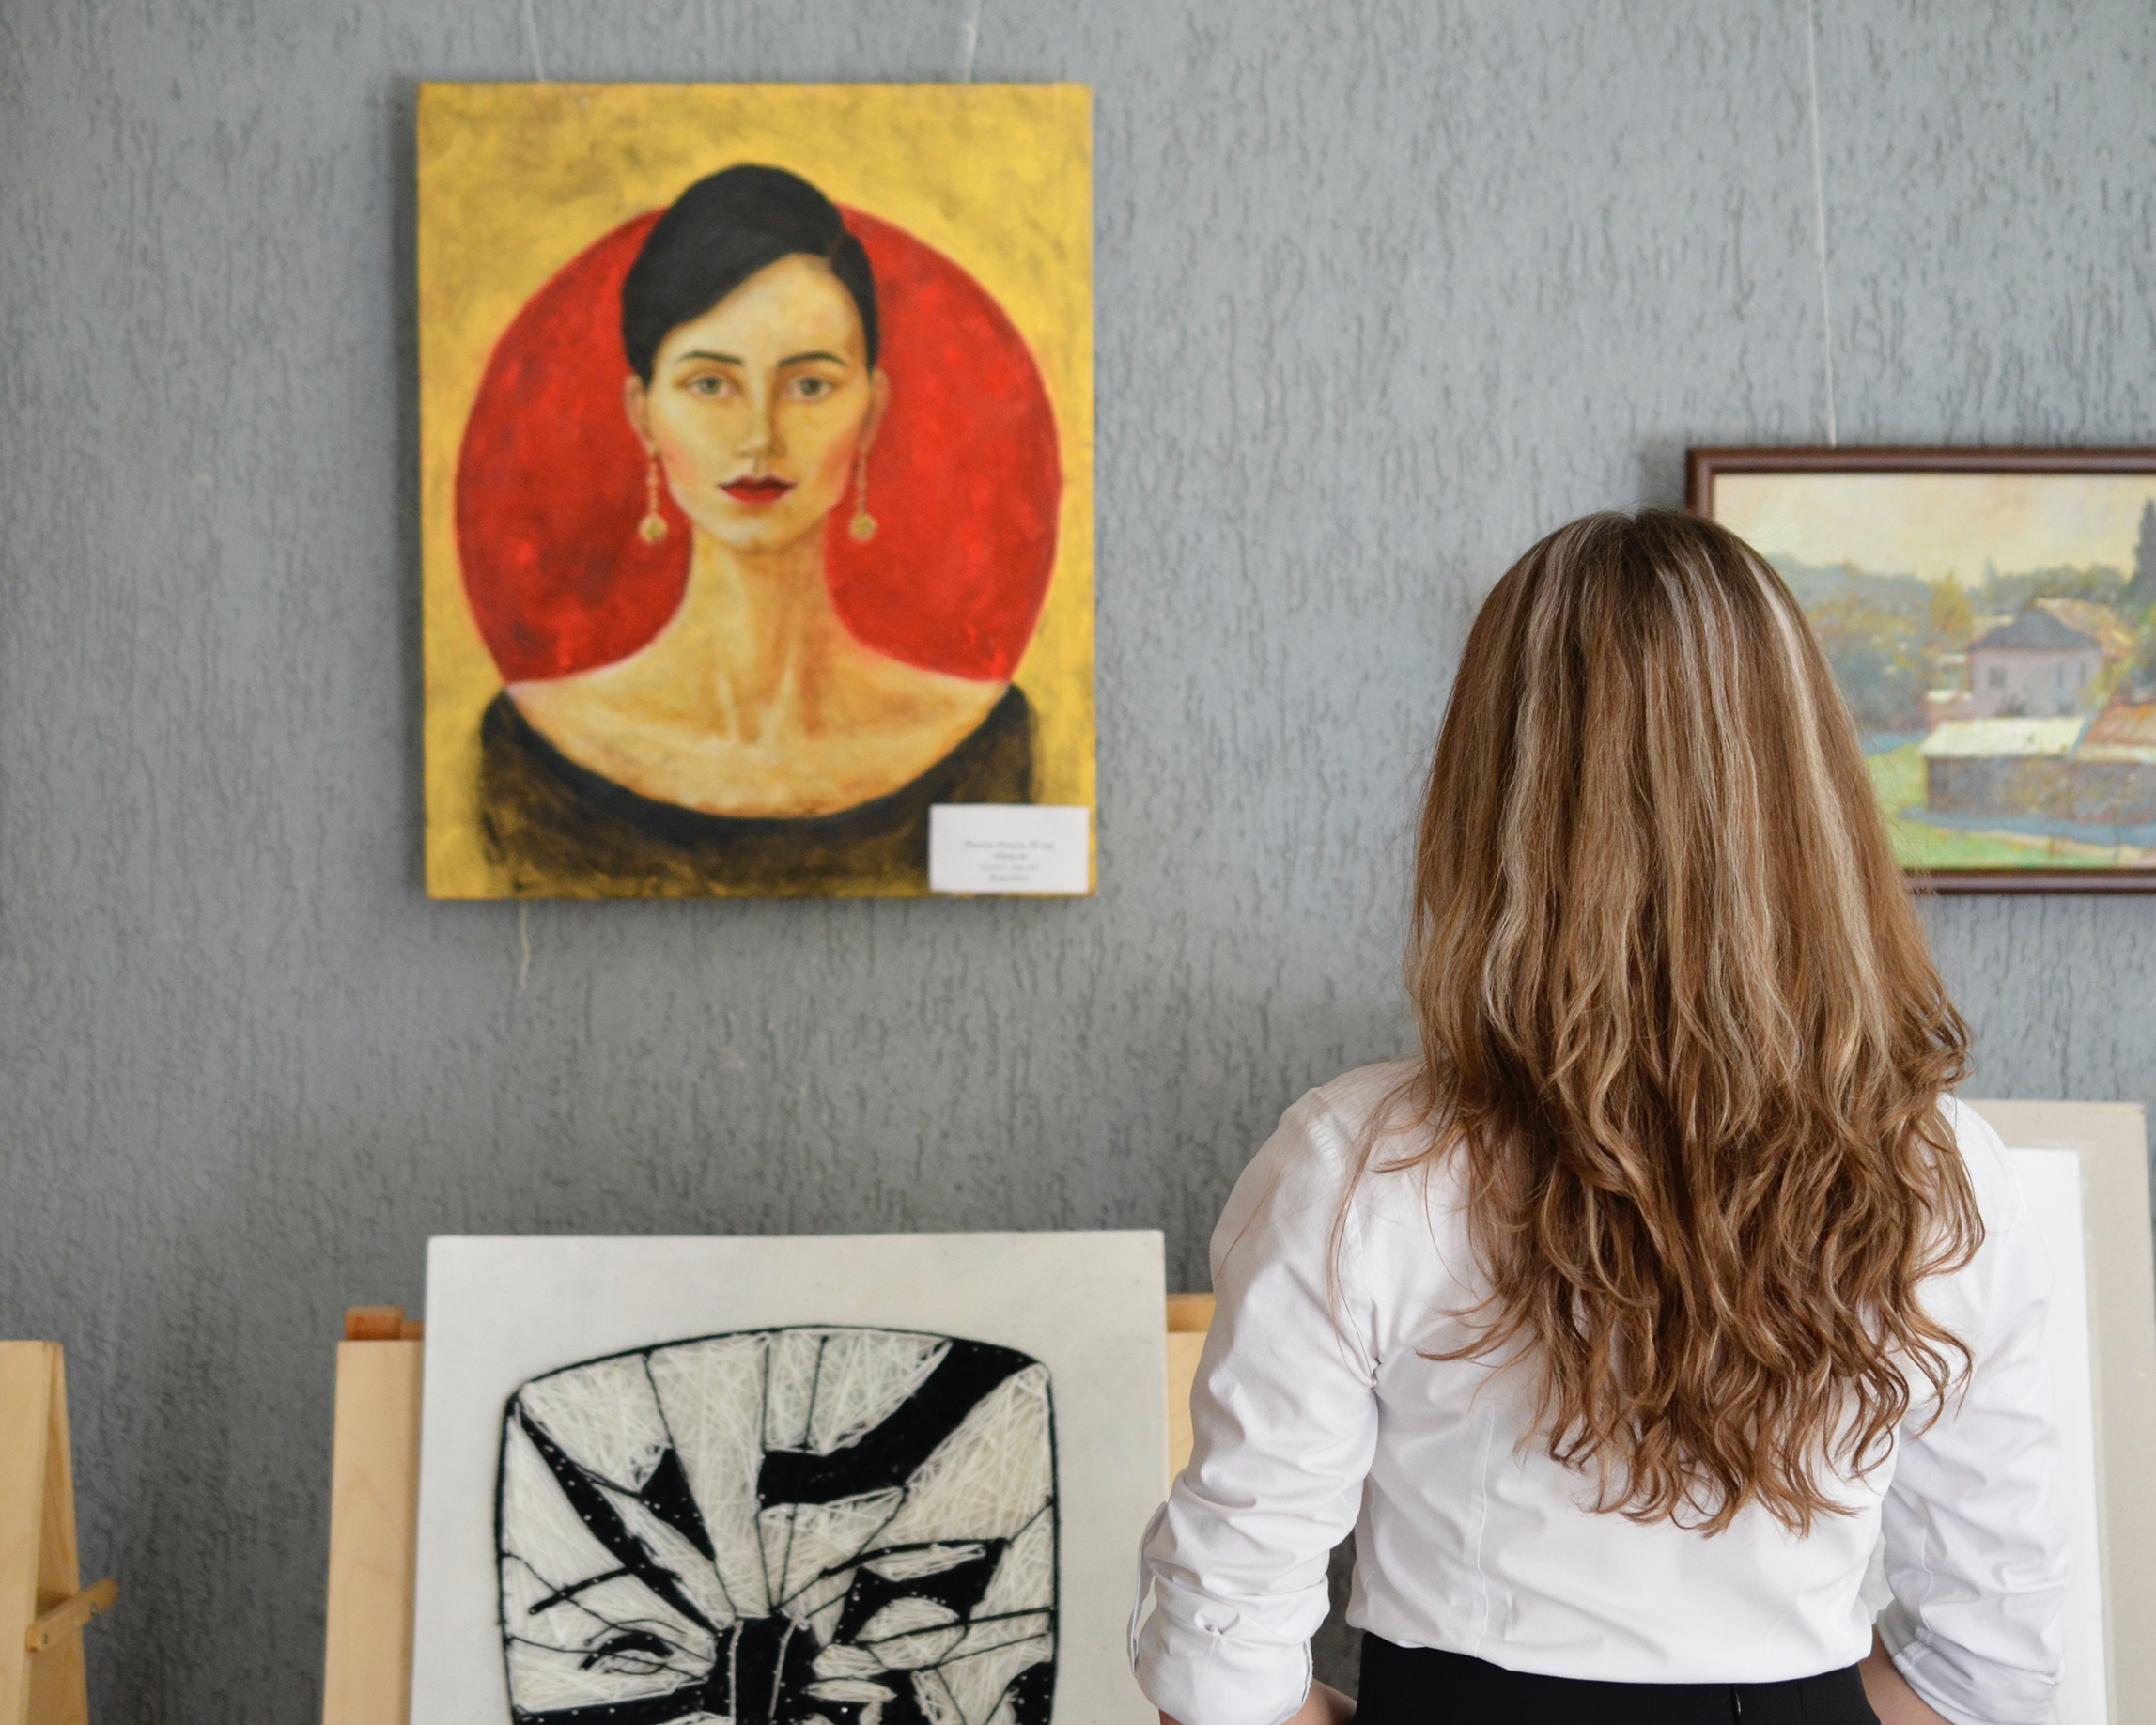 A woman viewing art in a gallery